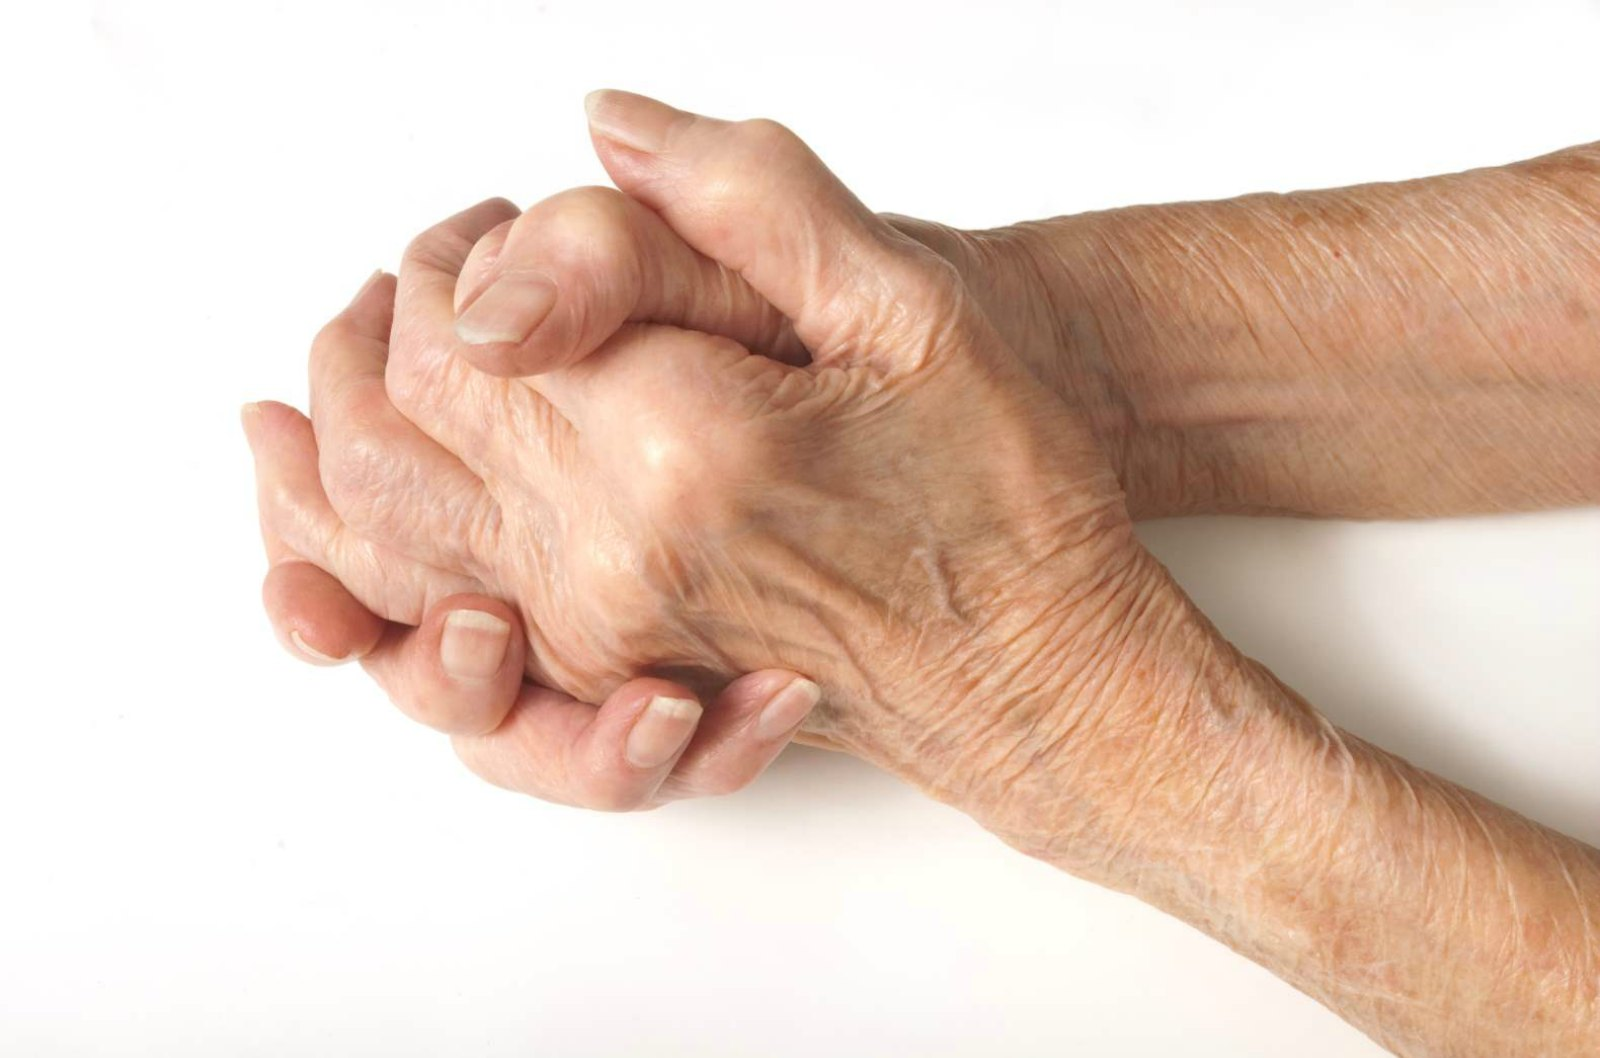 Cytokine Intervention Shows Promise for Fighting the  Painful Inflammation of Rheumatoid Arthritis